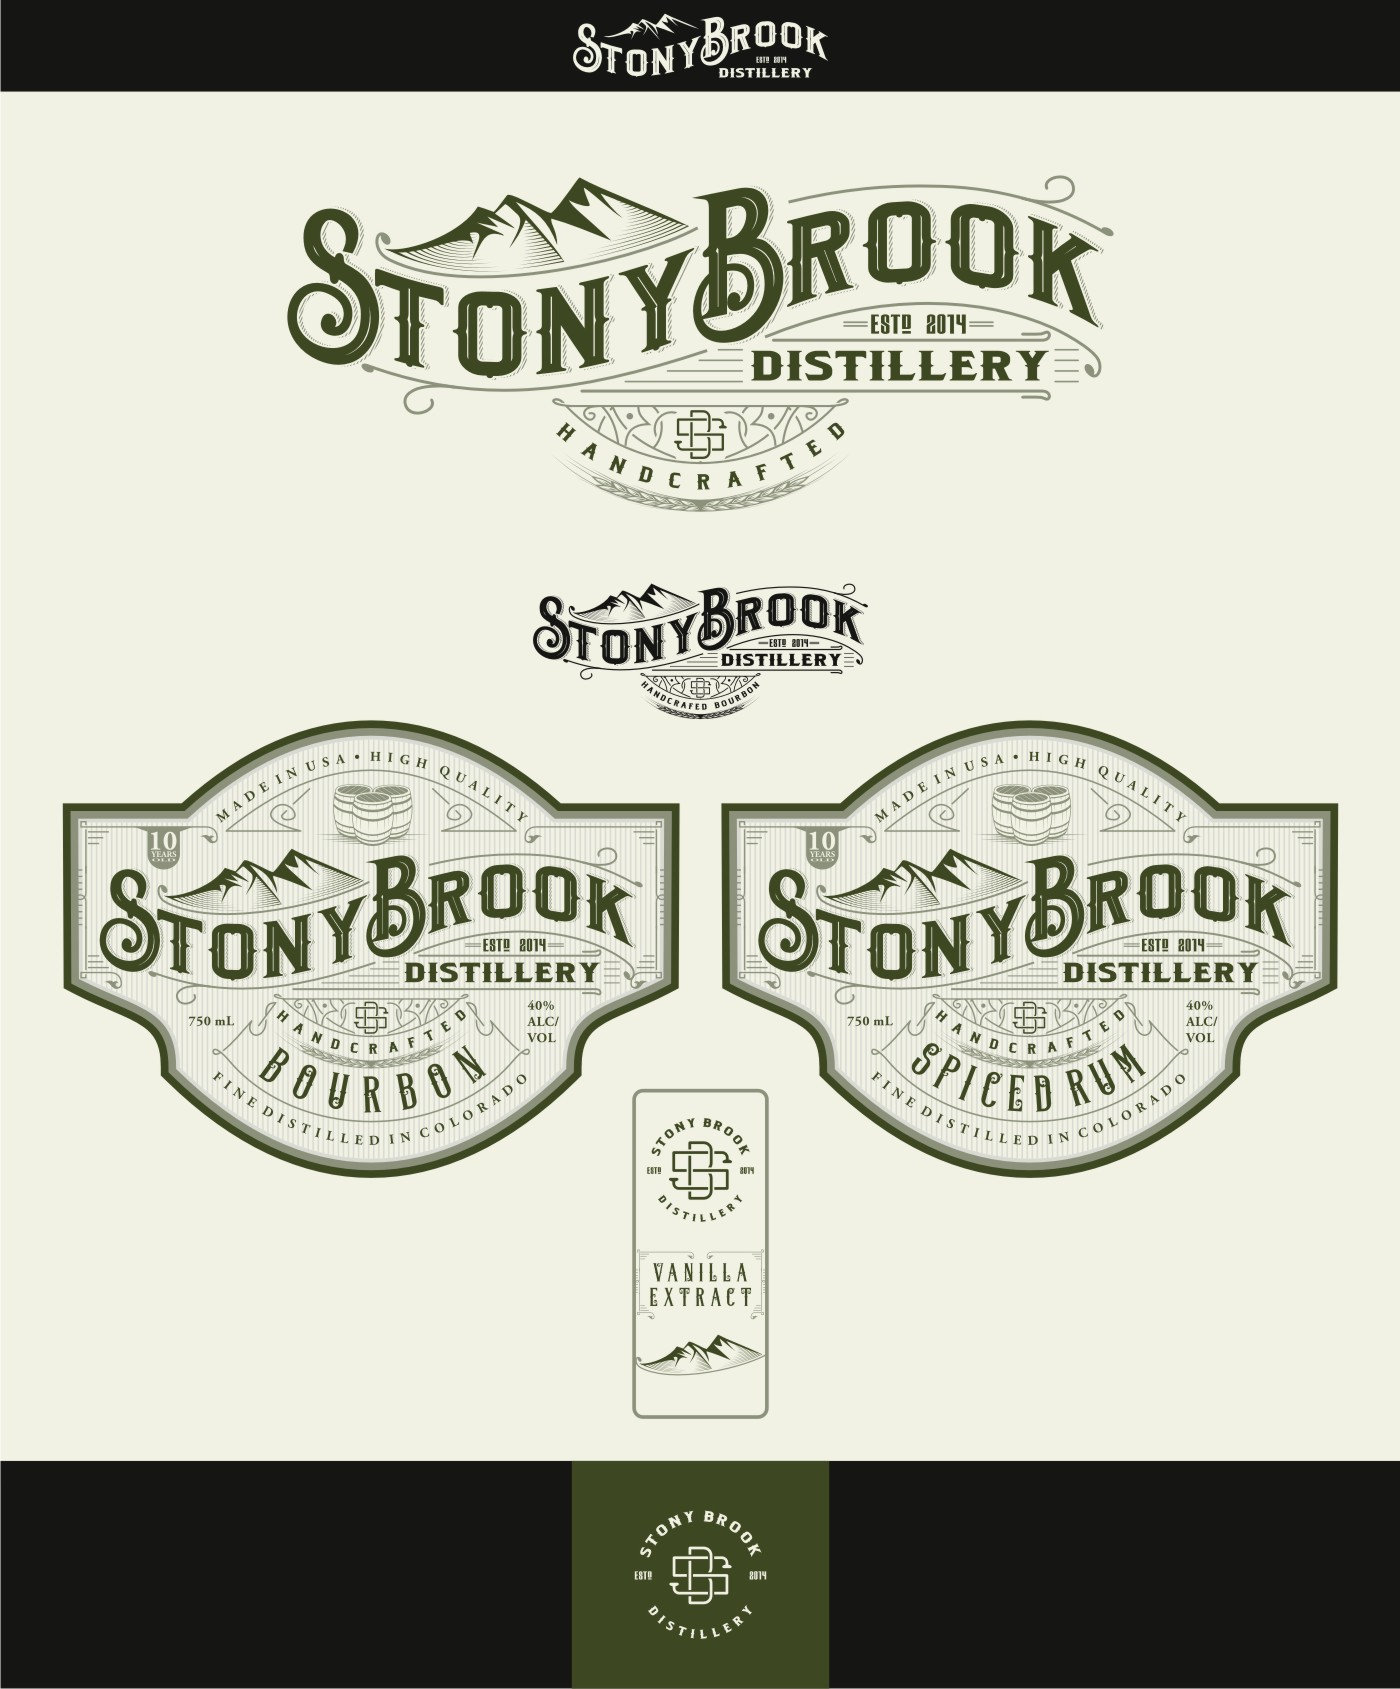 Stony Brook Distillery needing to be seen from the Mile High City.